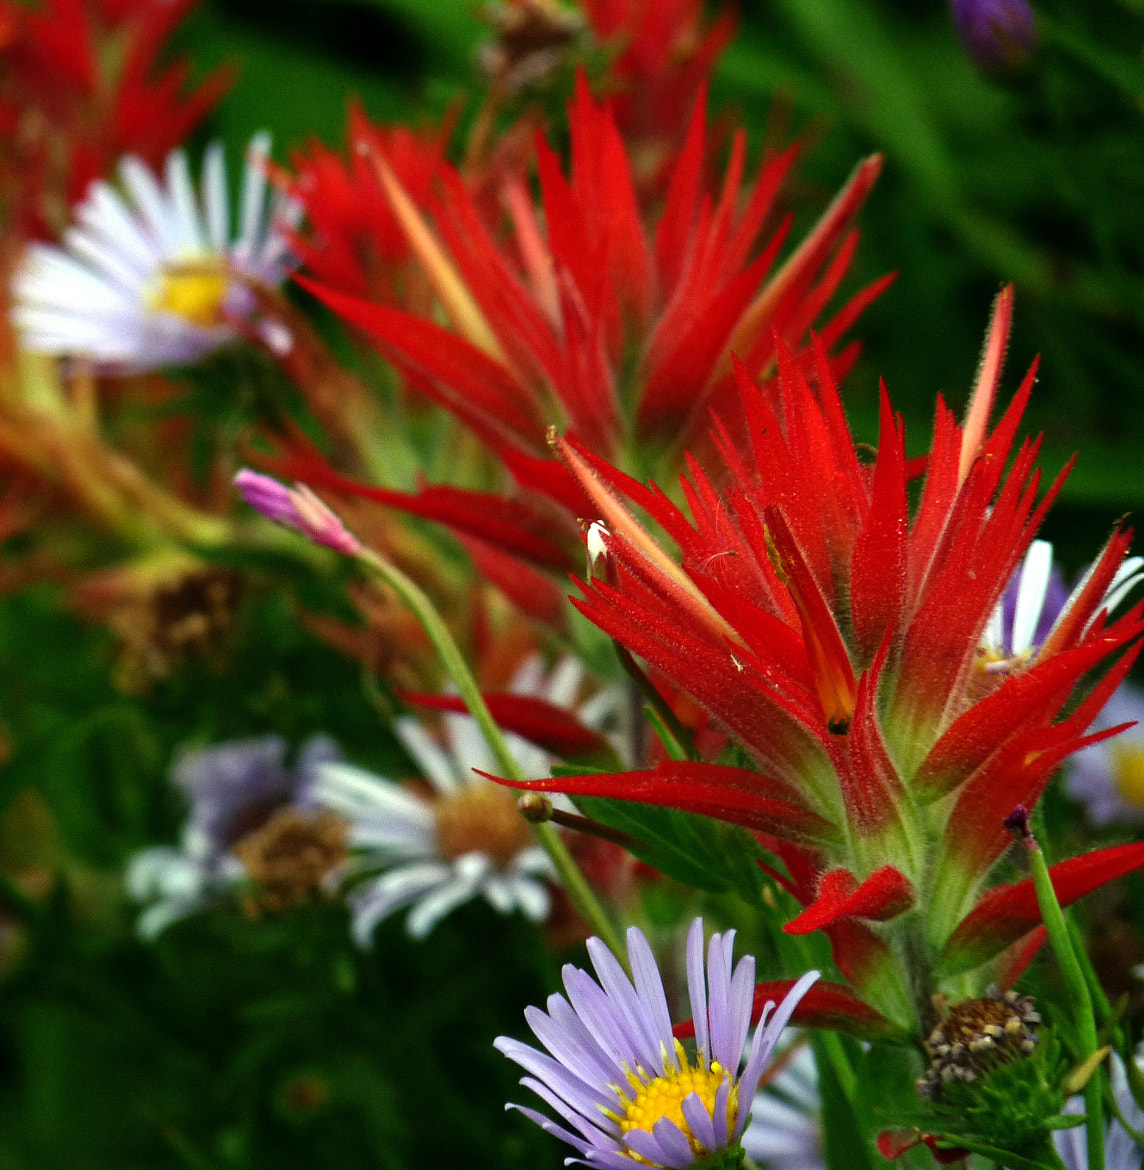 Photograph Wildflowers on Fire by Michael Sheltzer on 500px